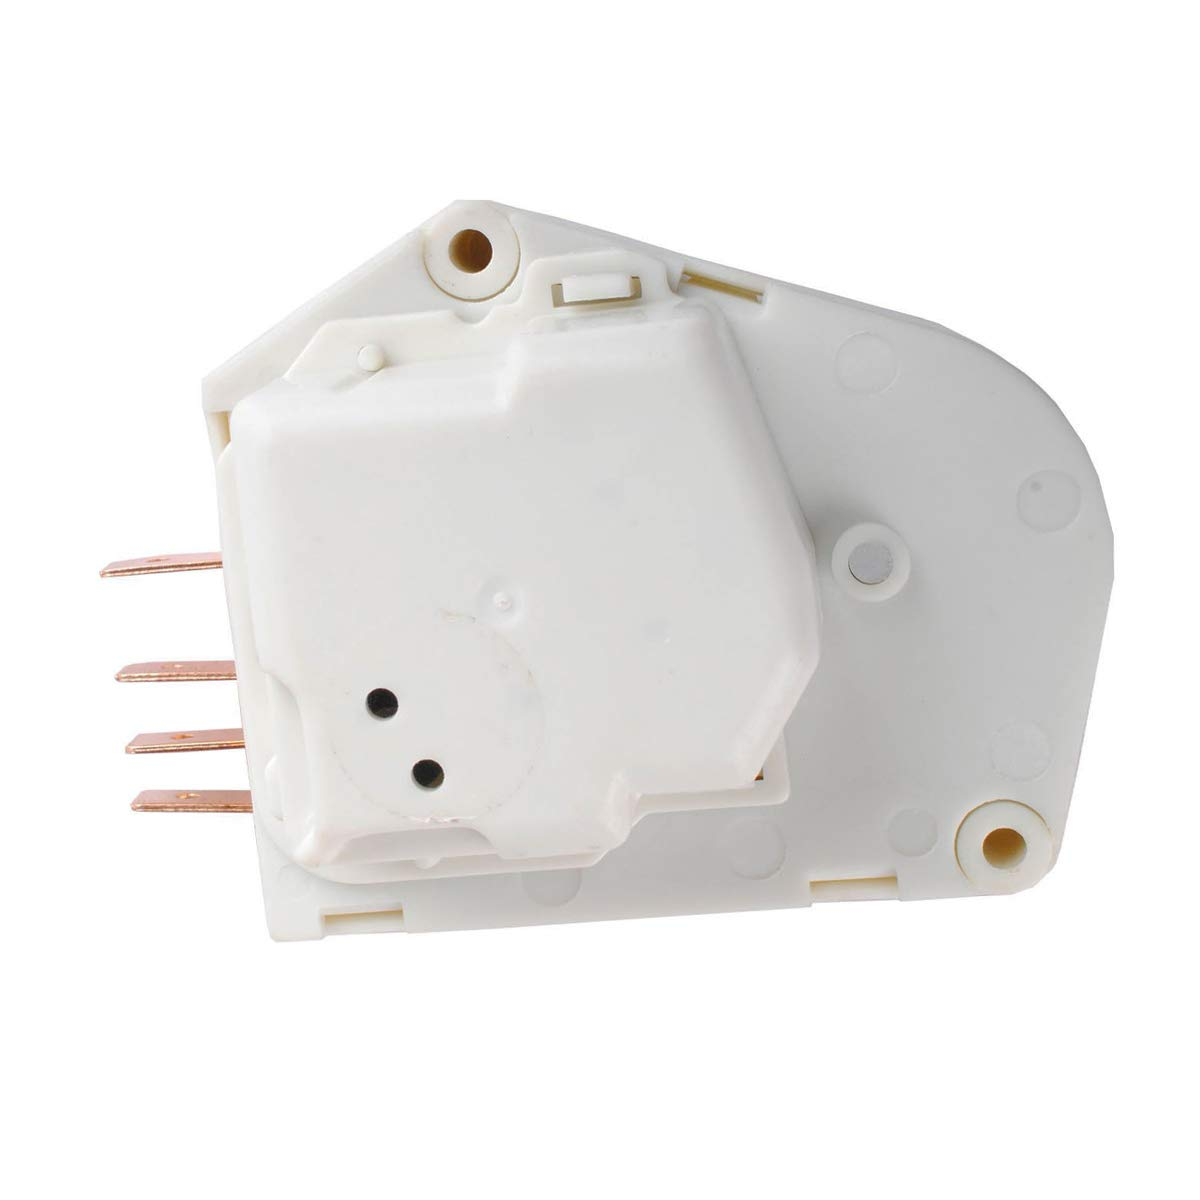 215846604 Defrost Timer for 215846604 Frigidaire & Kenmore Refrigerators, Replace 241809402 PS423802